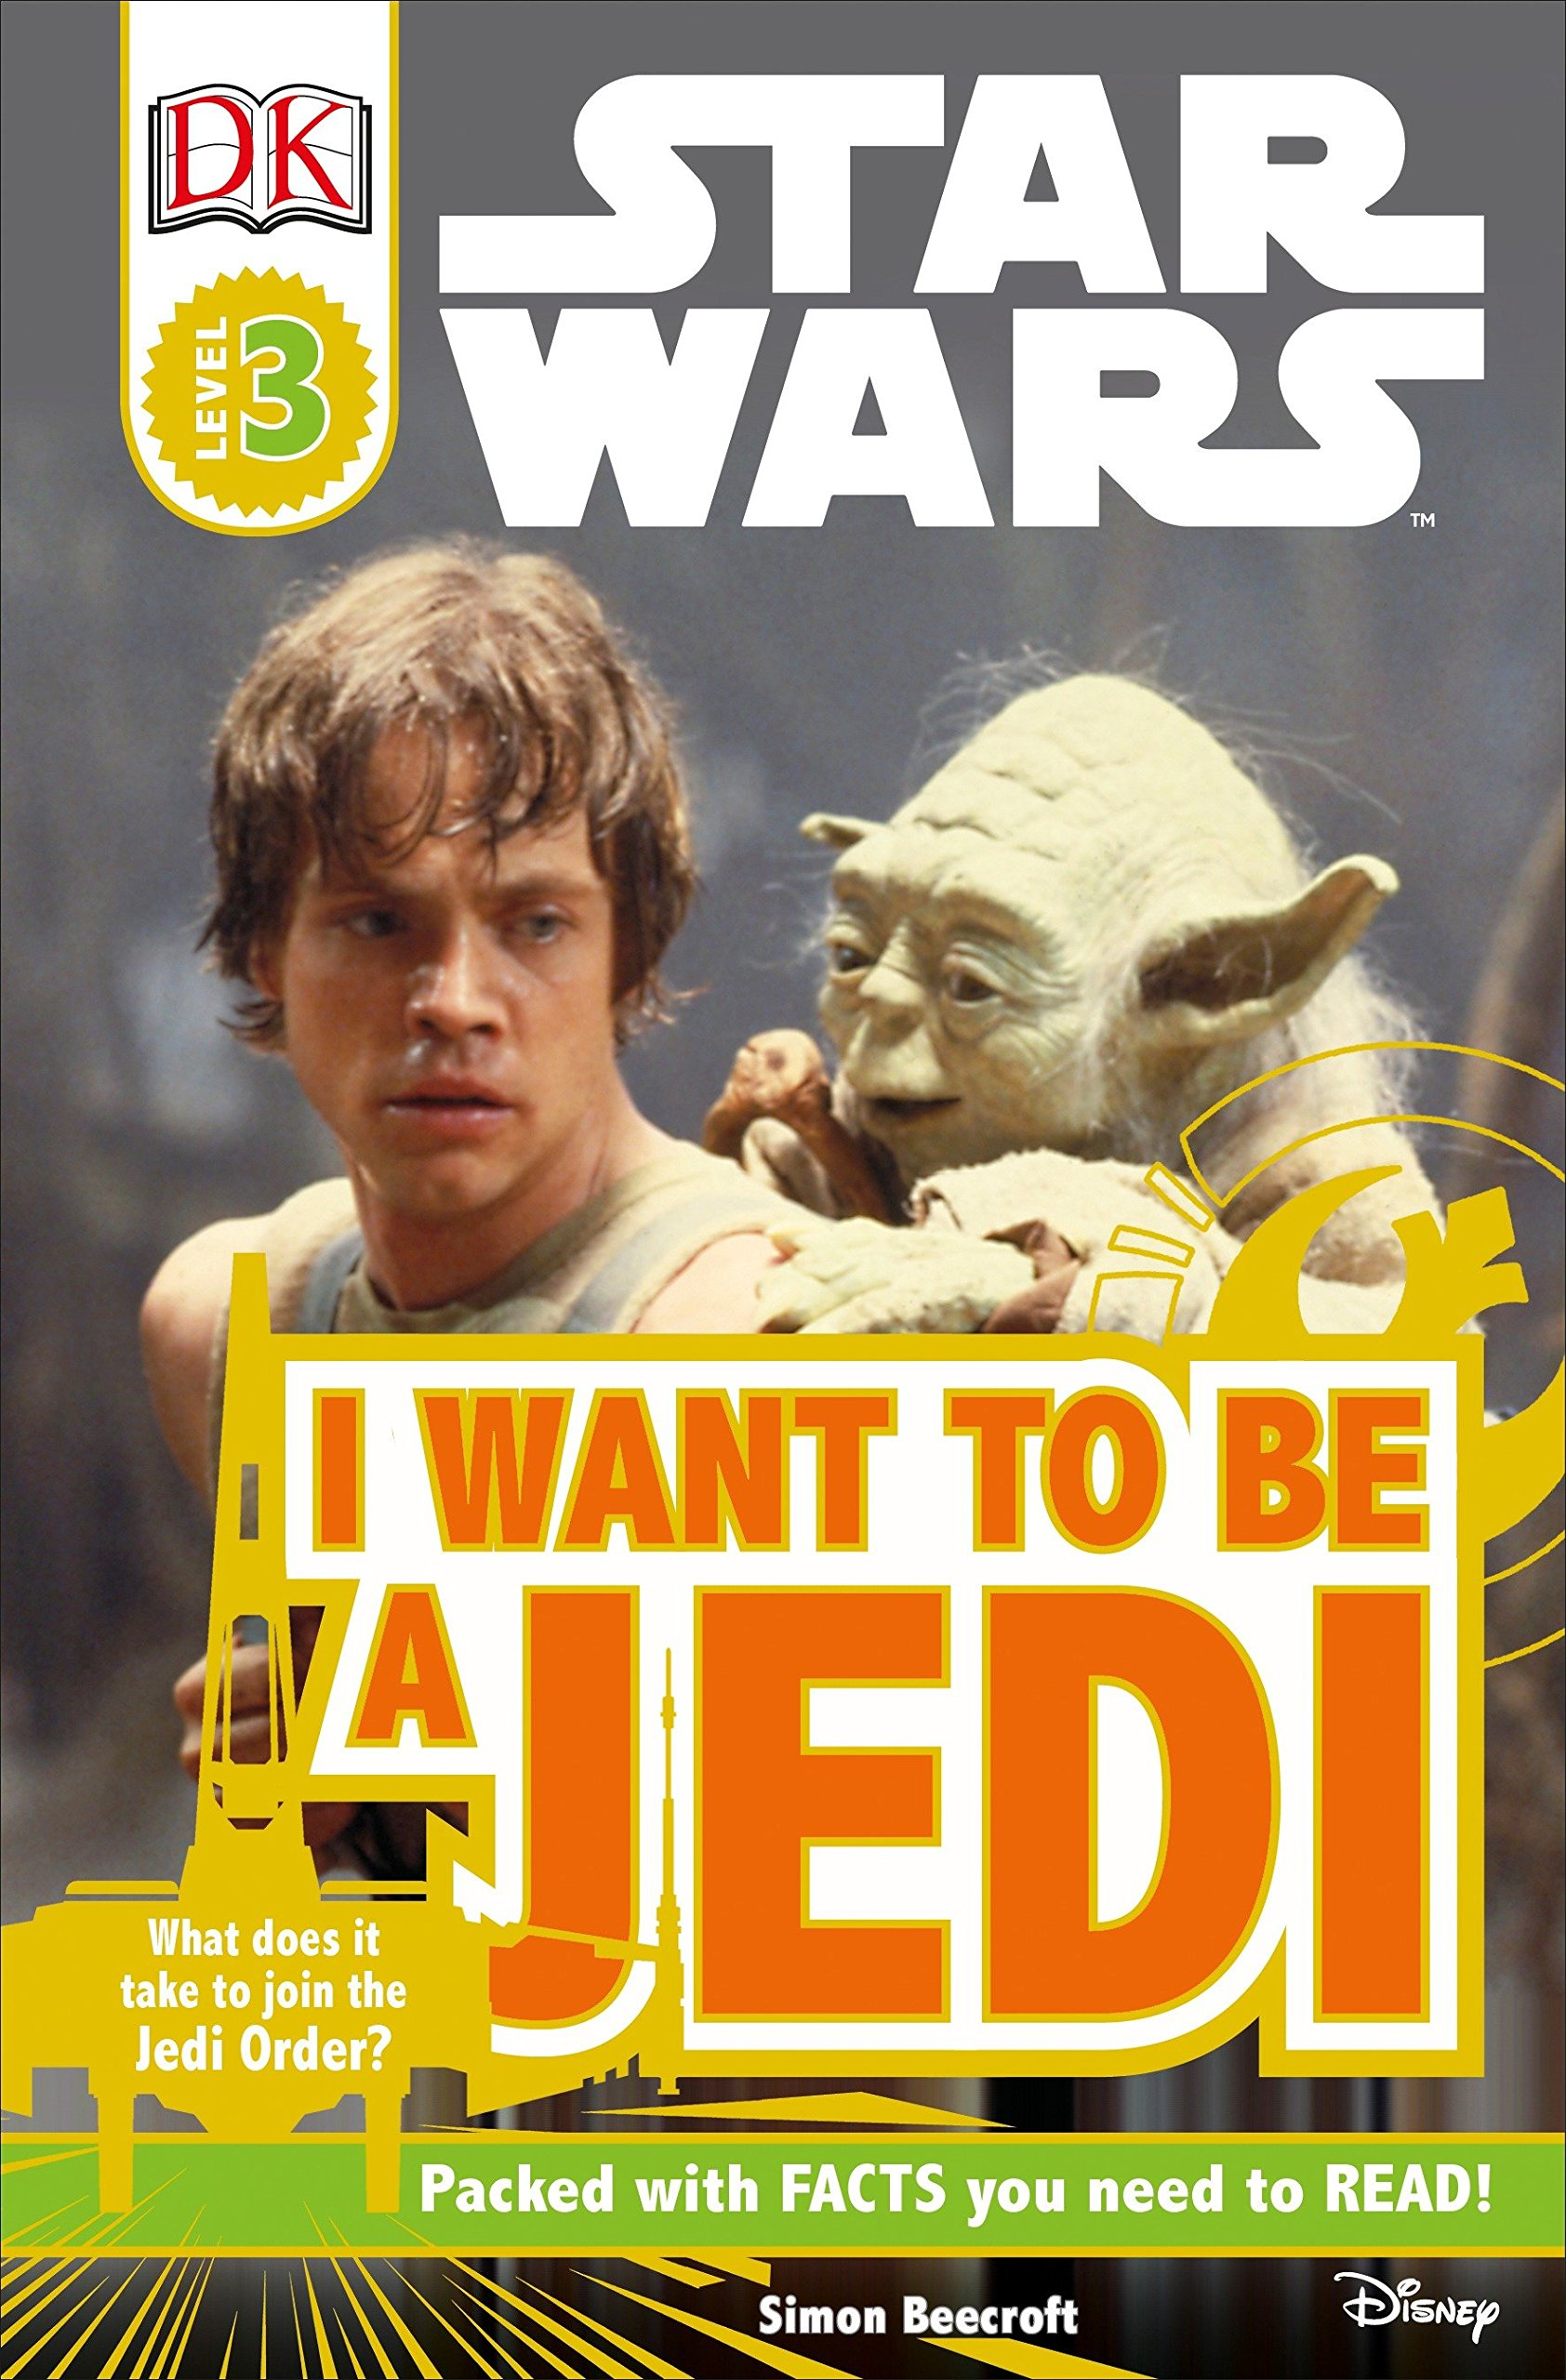 Download DK Readers L3: Star Wars: I Want To Be A Jedi: What Does It Take to Join the Jedi Order? (DK Readers Level 3) ebook